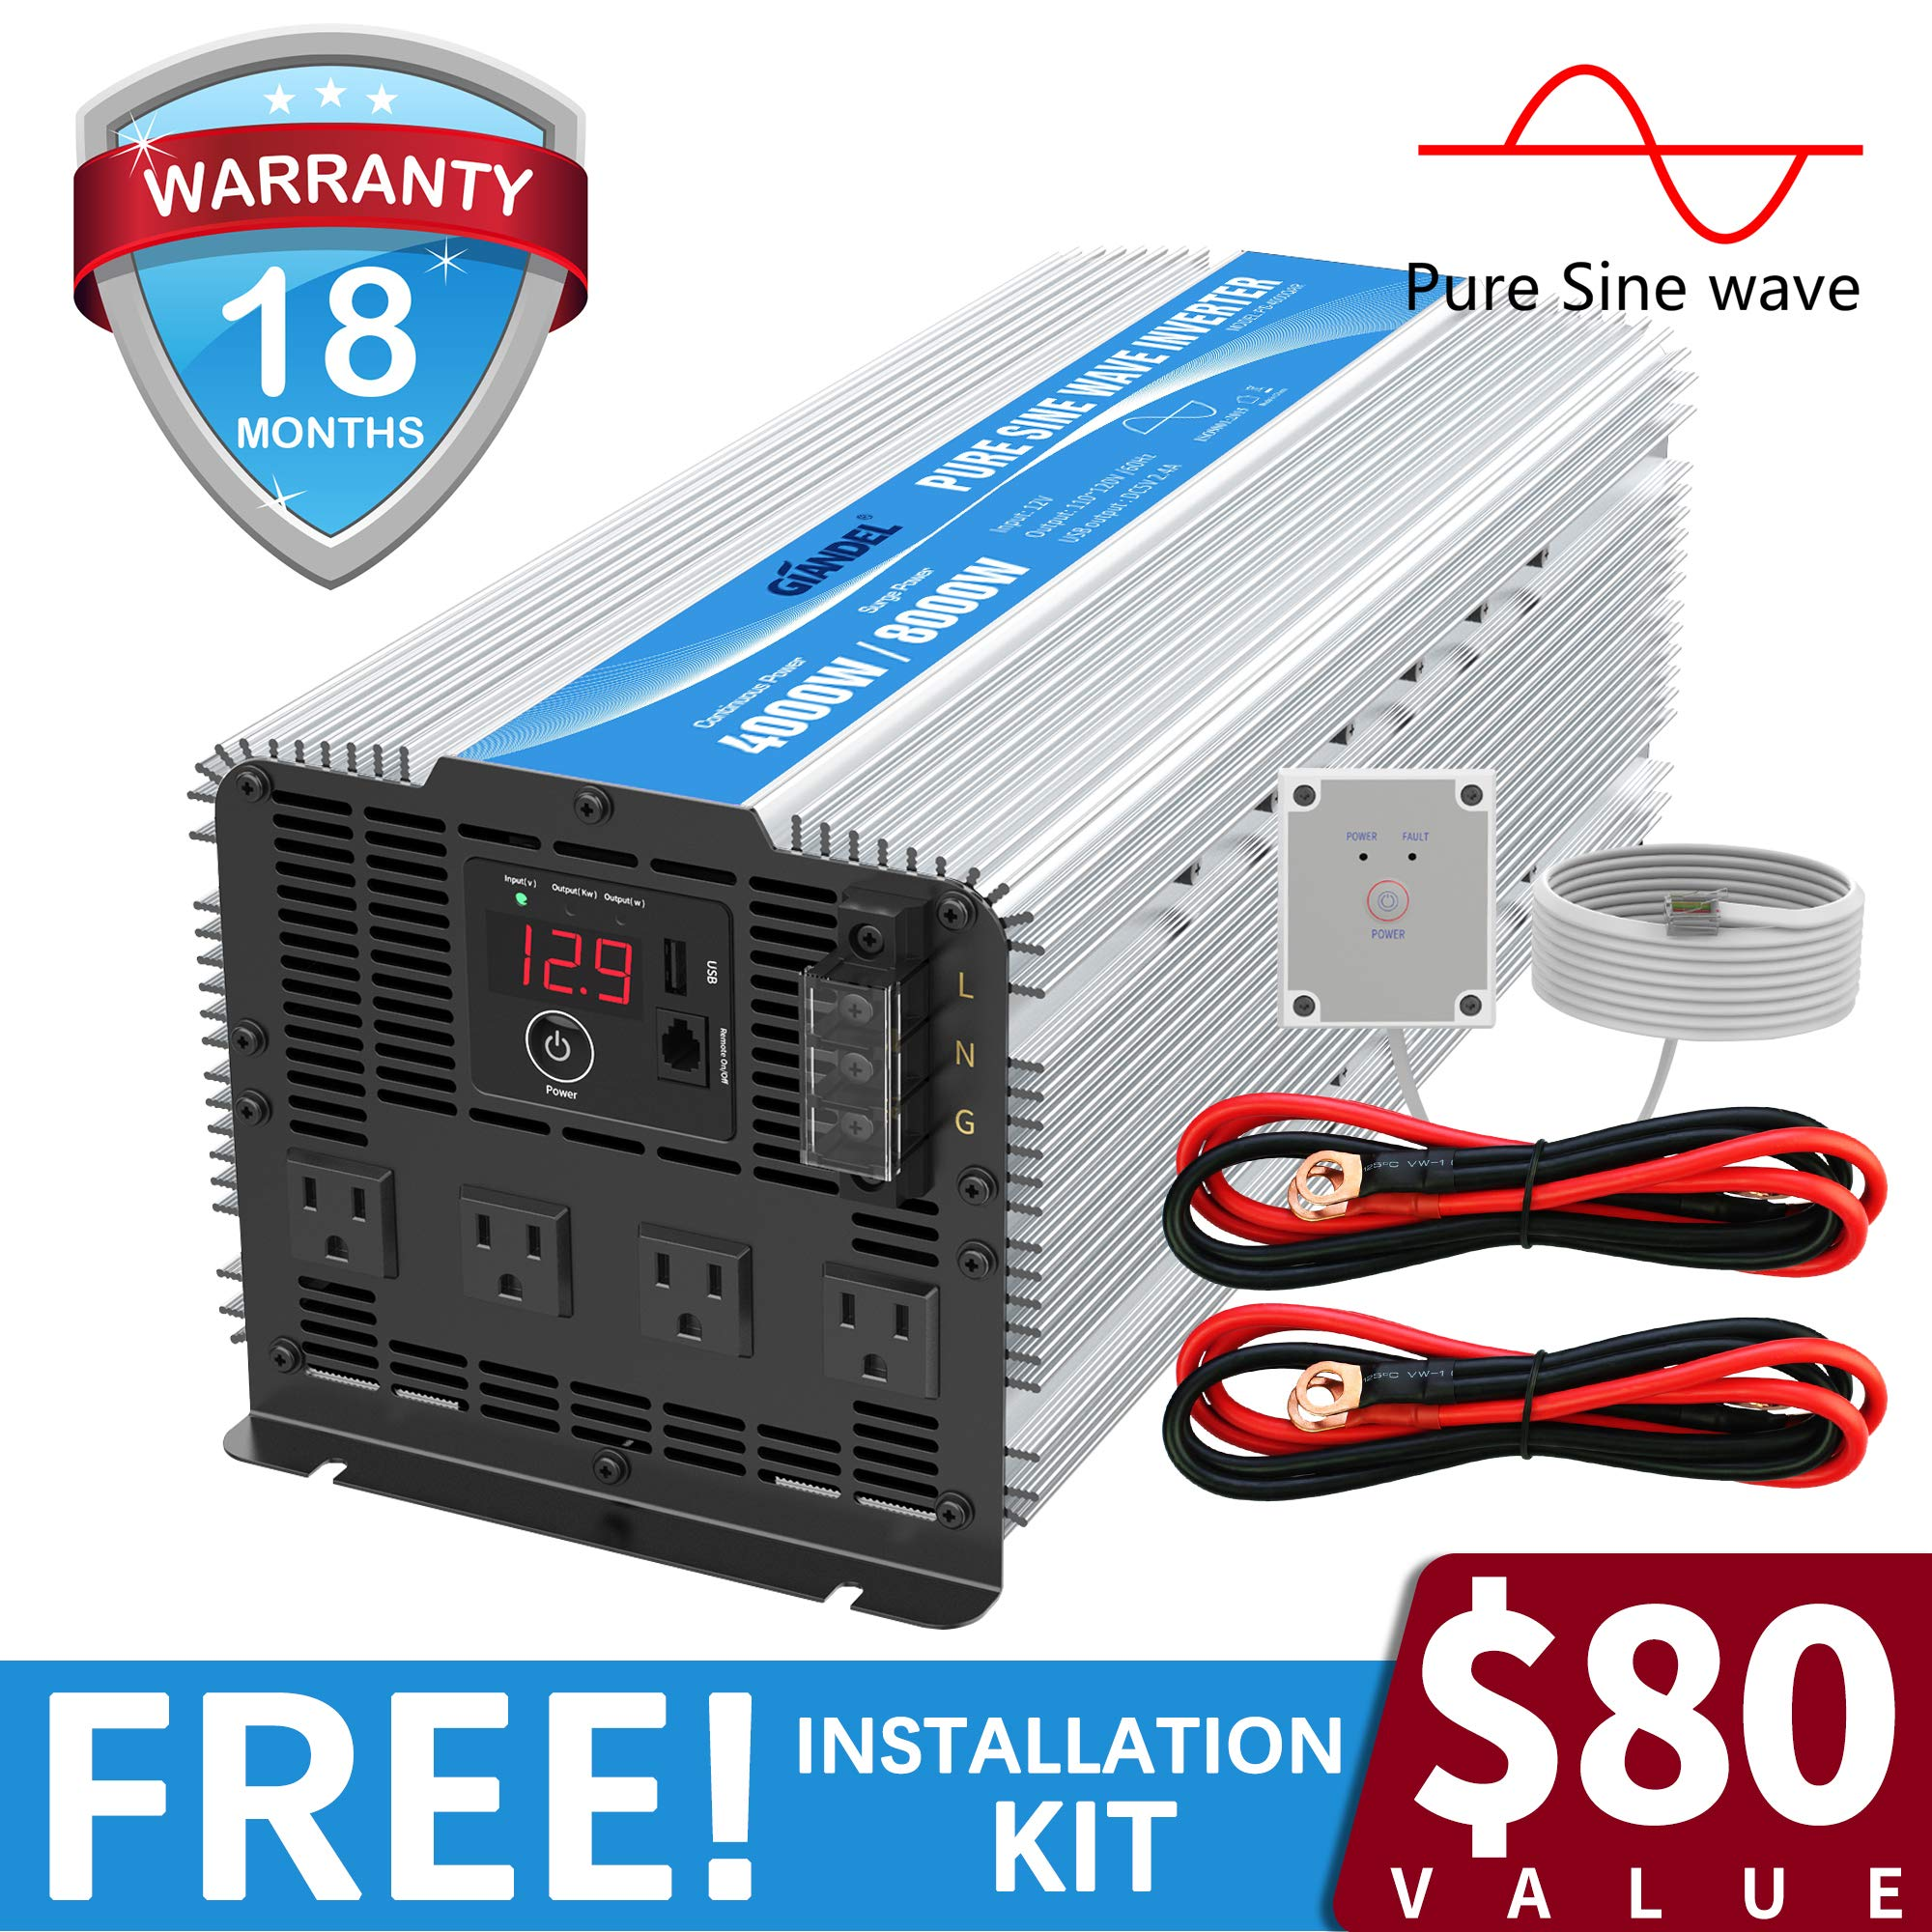 GIANDEL 4000W Heavy Duty Pure Sine Wave Power Inverter DC12V to AC120V with 4 AC Outlets with Remote Control 2.4A USB and LED Display by GIANDEL